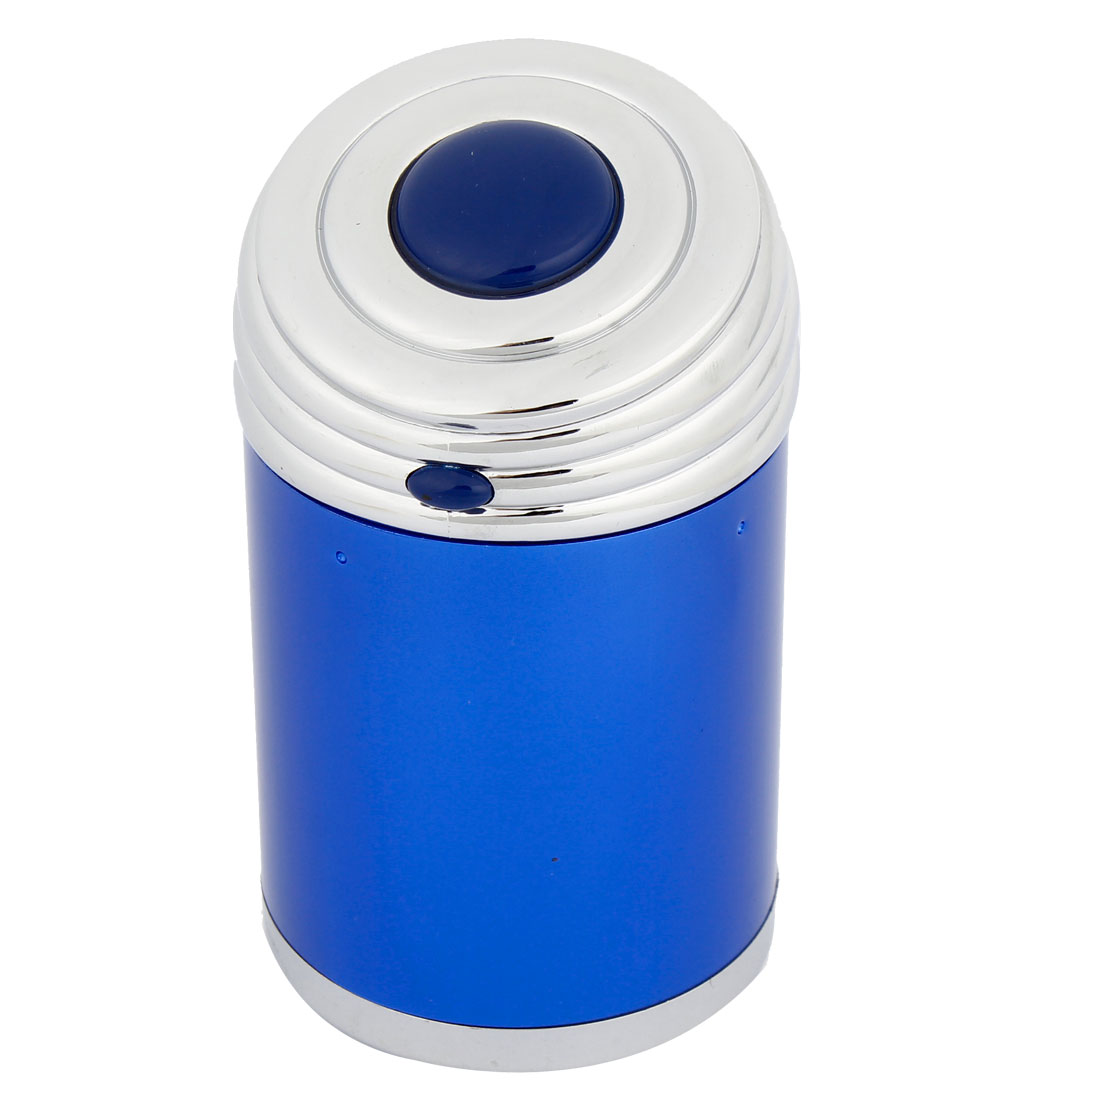 Car Interior Decor Cylinder Shaped Button Design Ashtray Ash Holder Blue 11cm Height